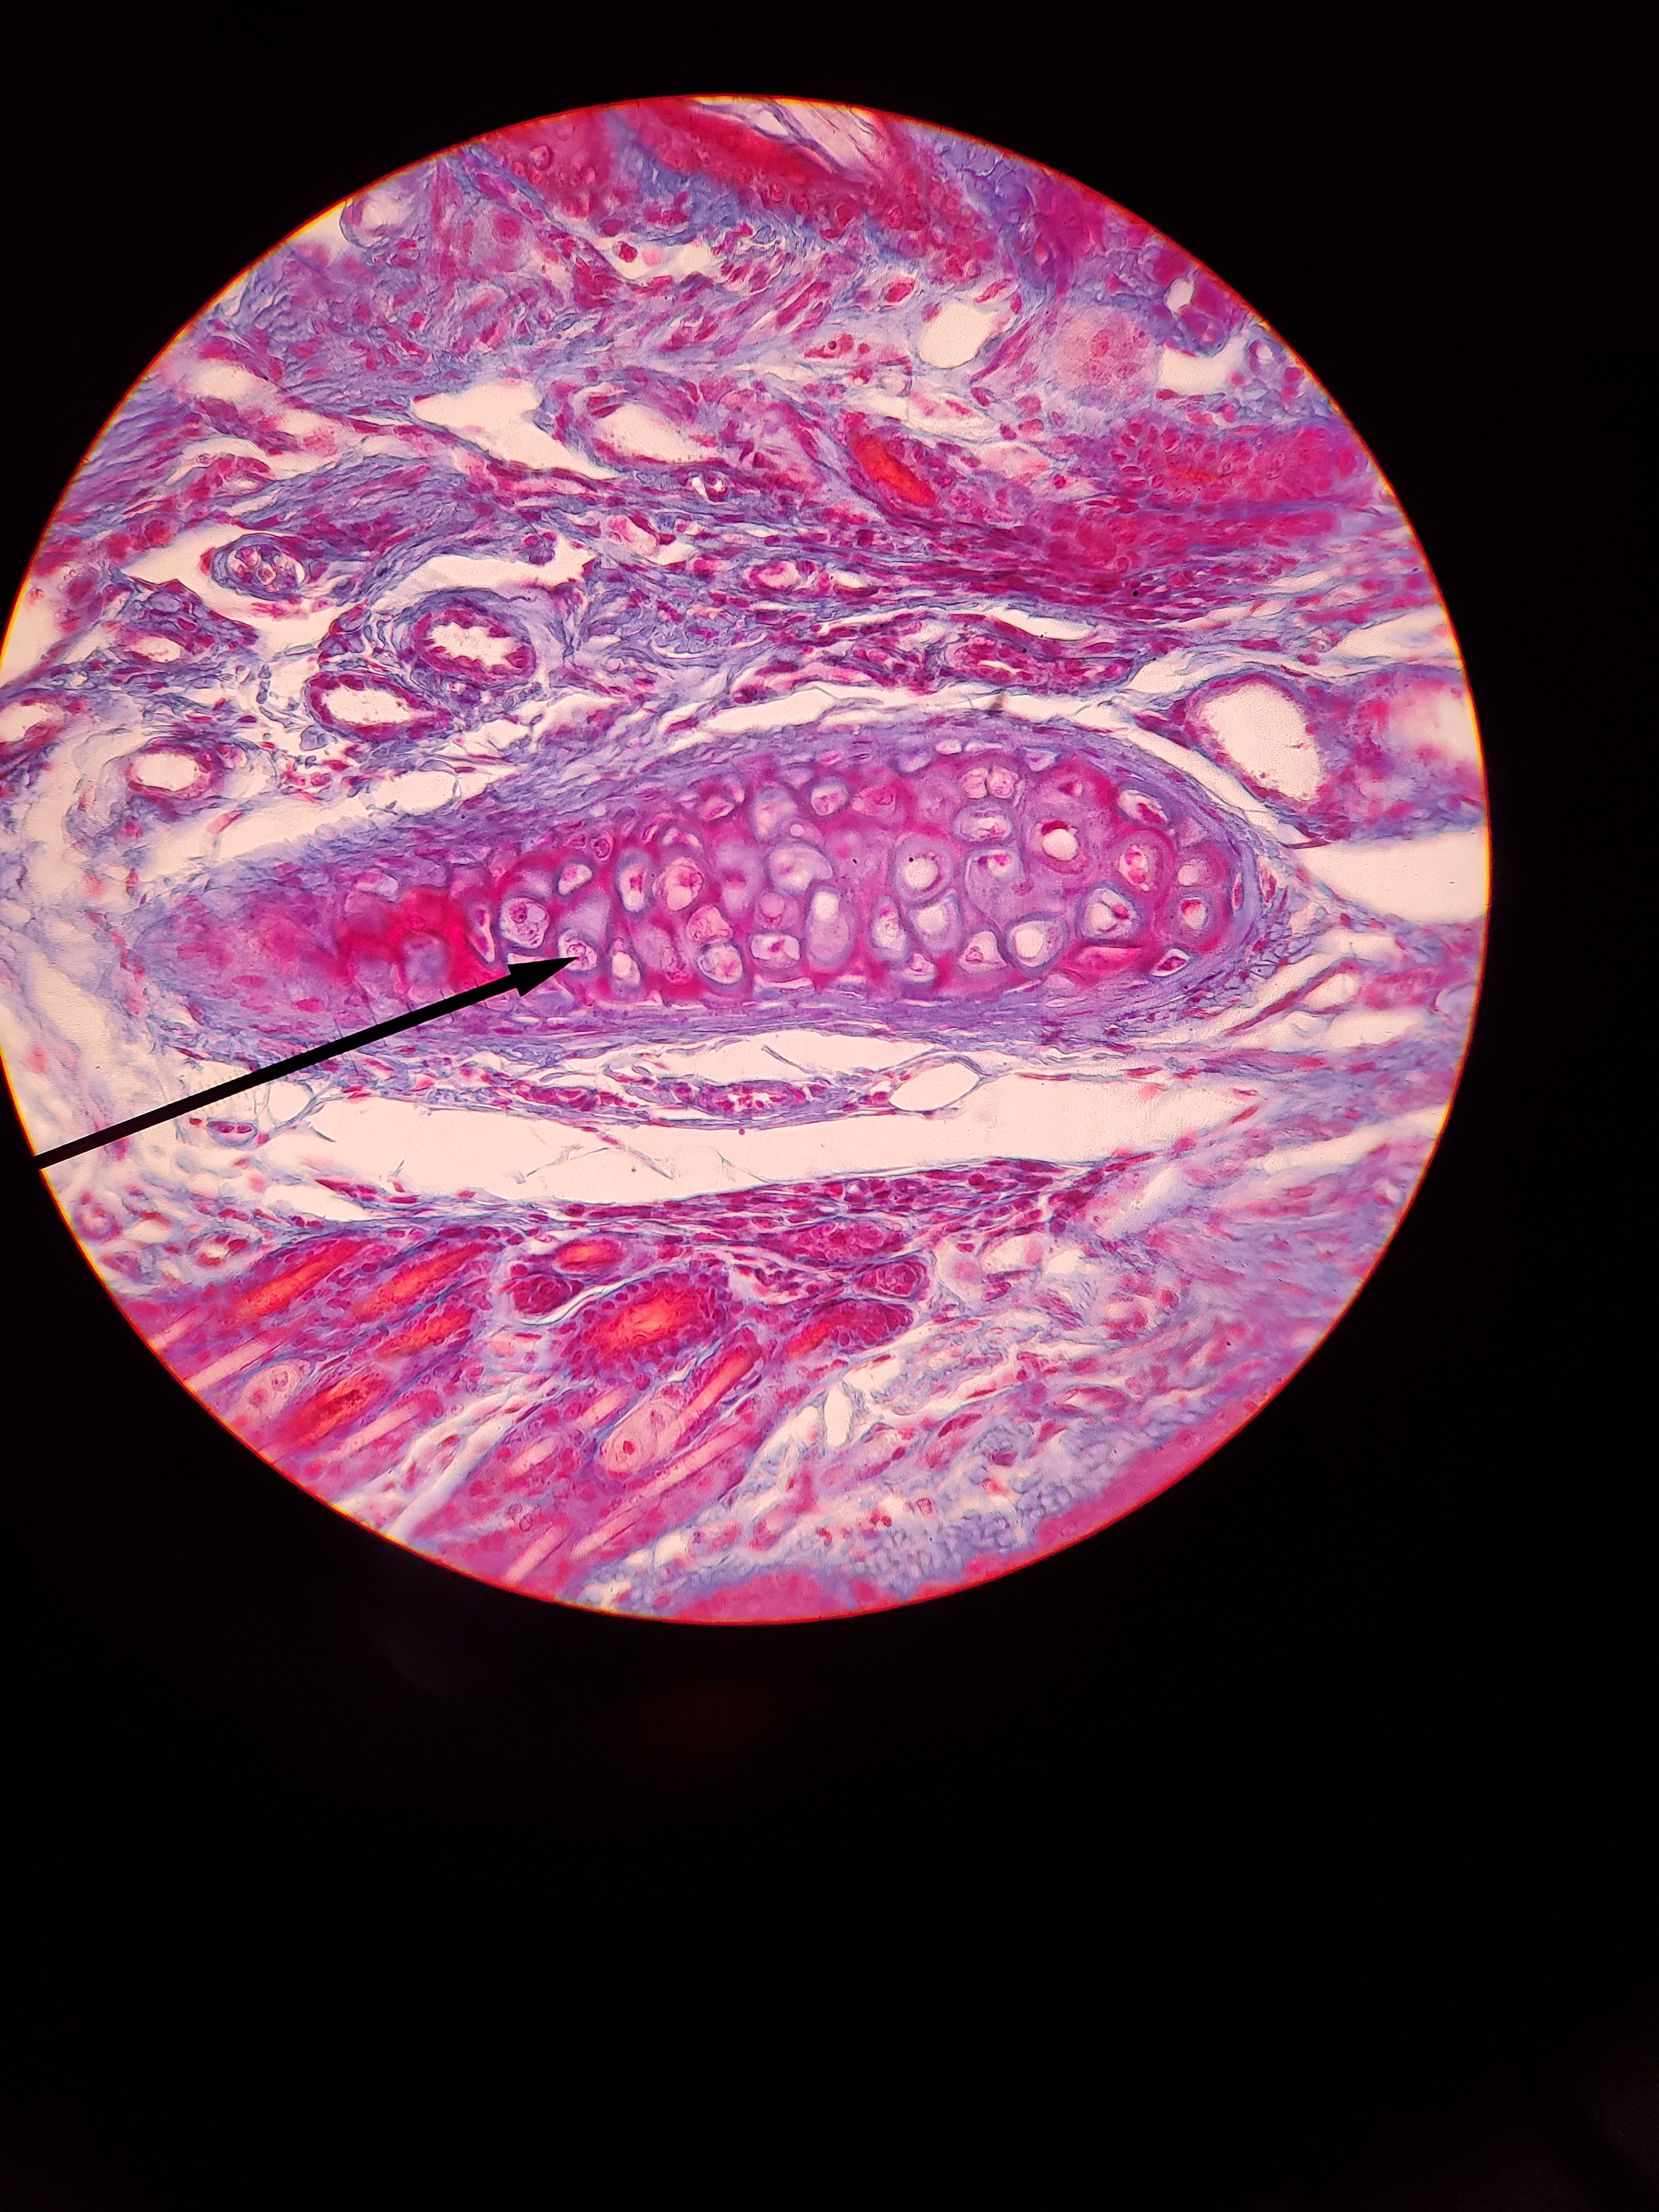 Elastic Cartilage With Images Cartilage Elastic Ear